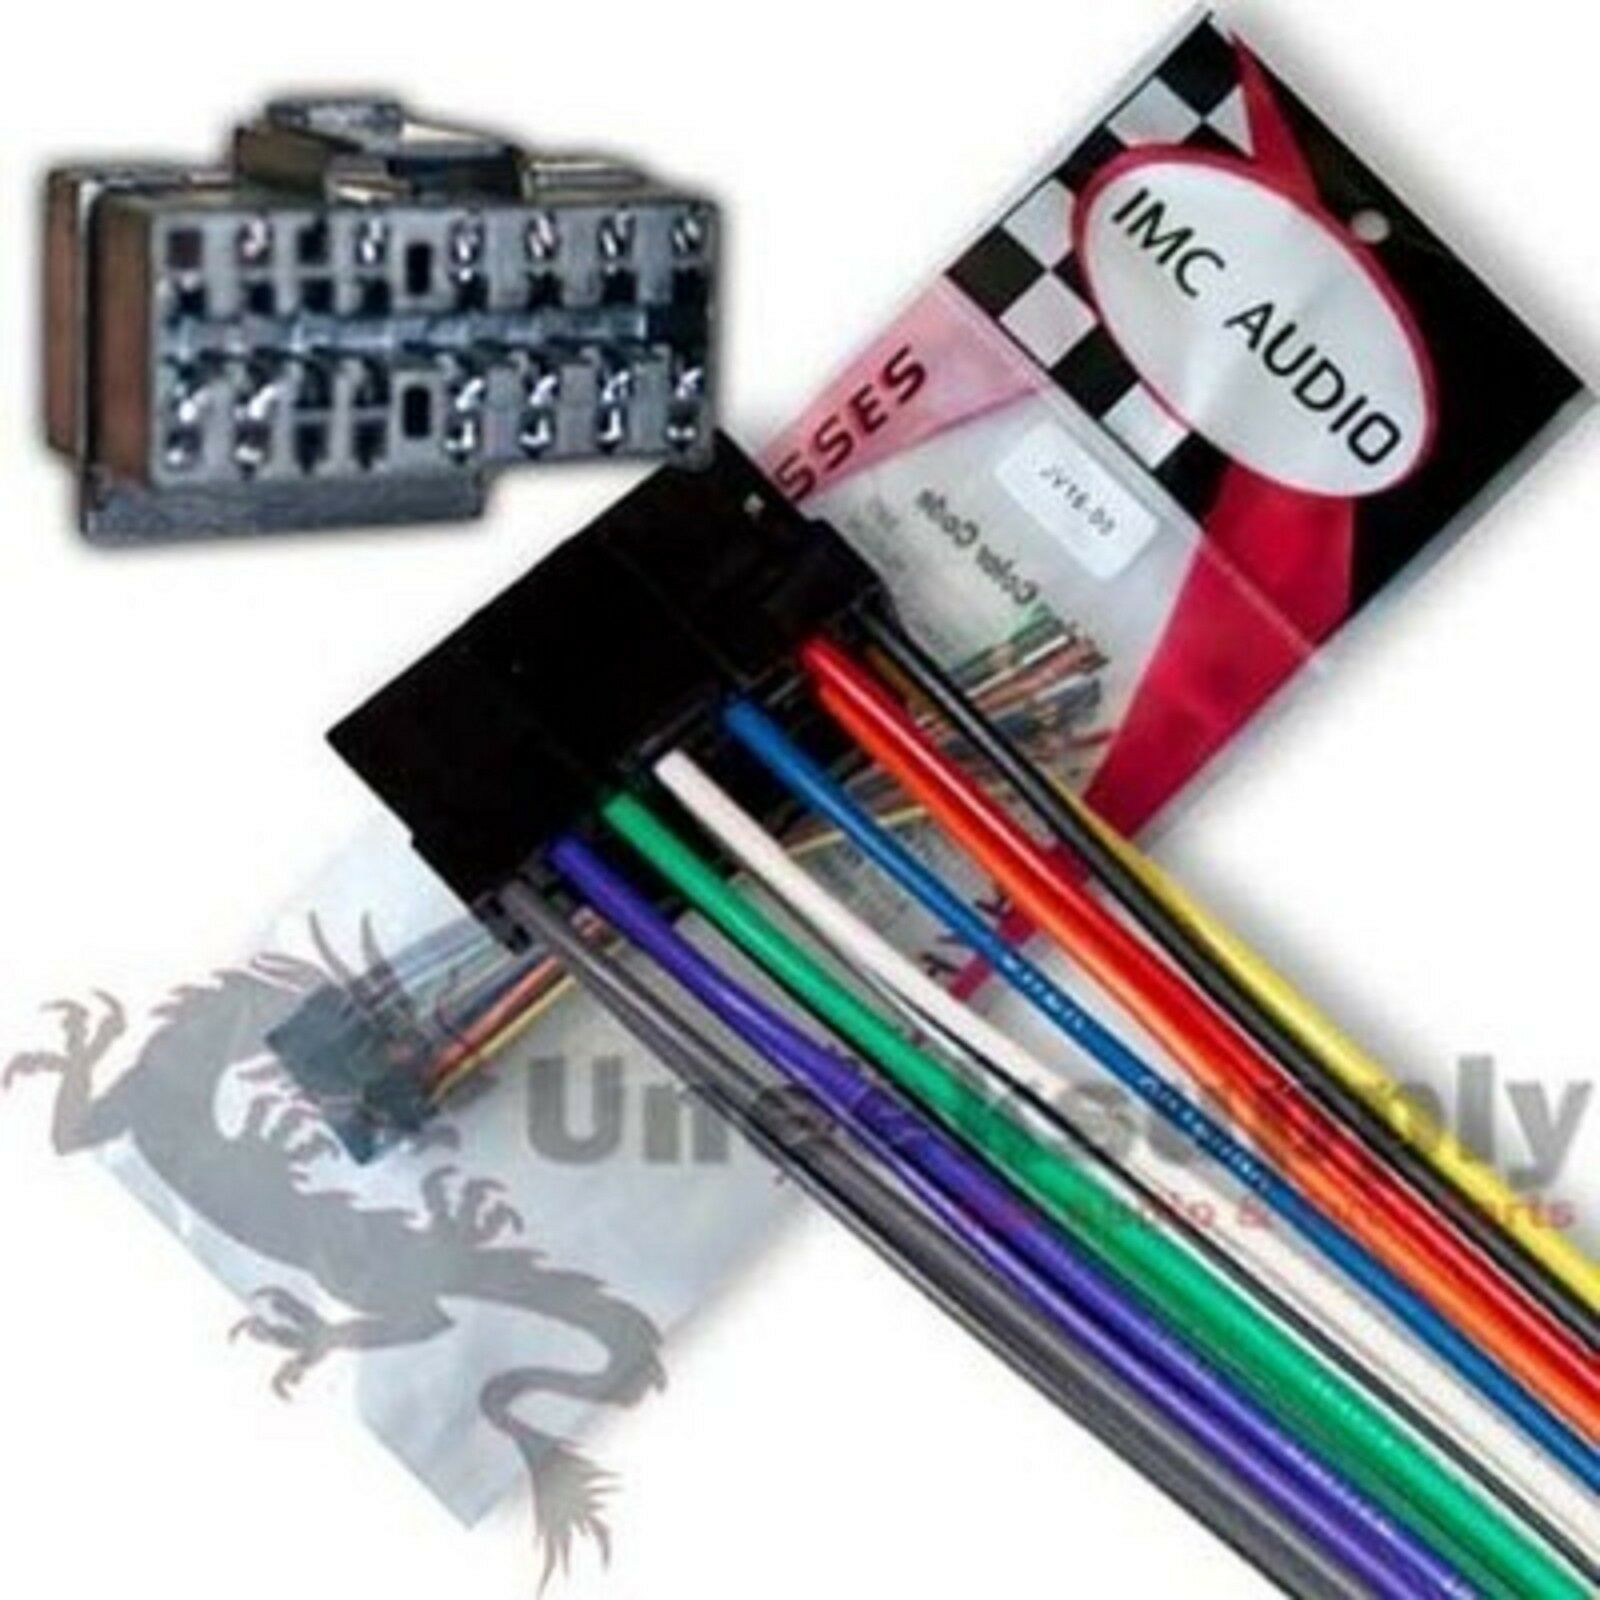 JVC Car Stereo 16 PIN Wire Harness Fits Select JVC Models Ships from USA 1  of 1FREE Shipping See More